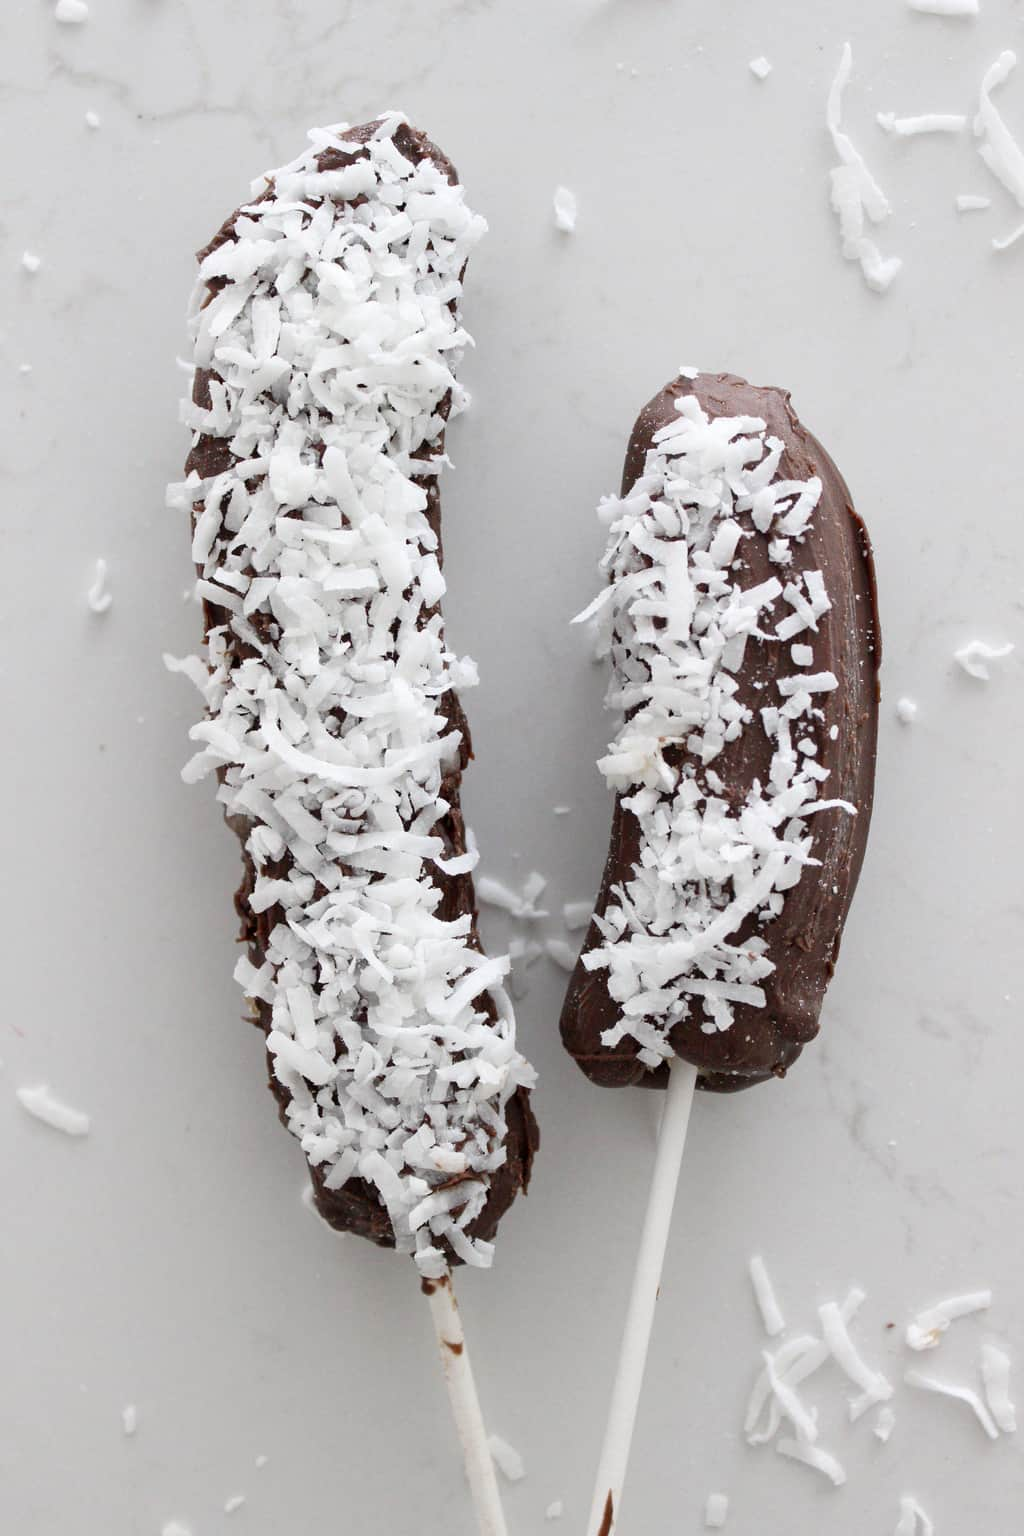 frozen-chocolate-covered-bananas-coconut